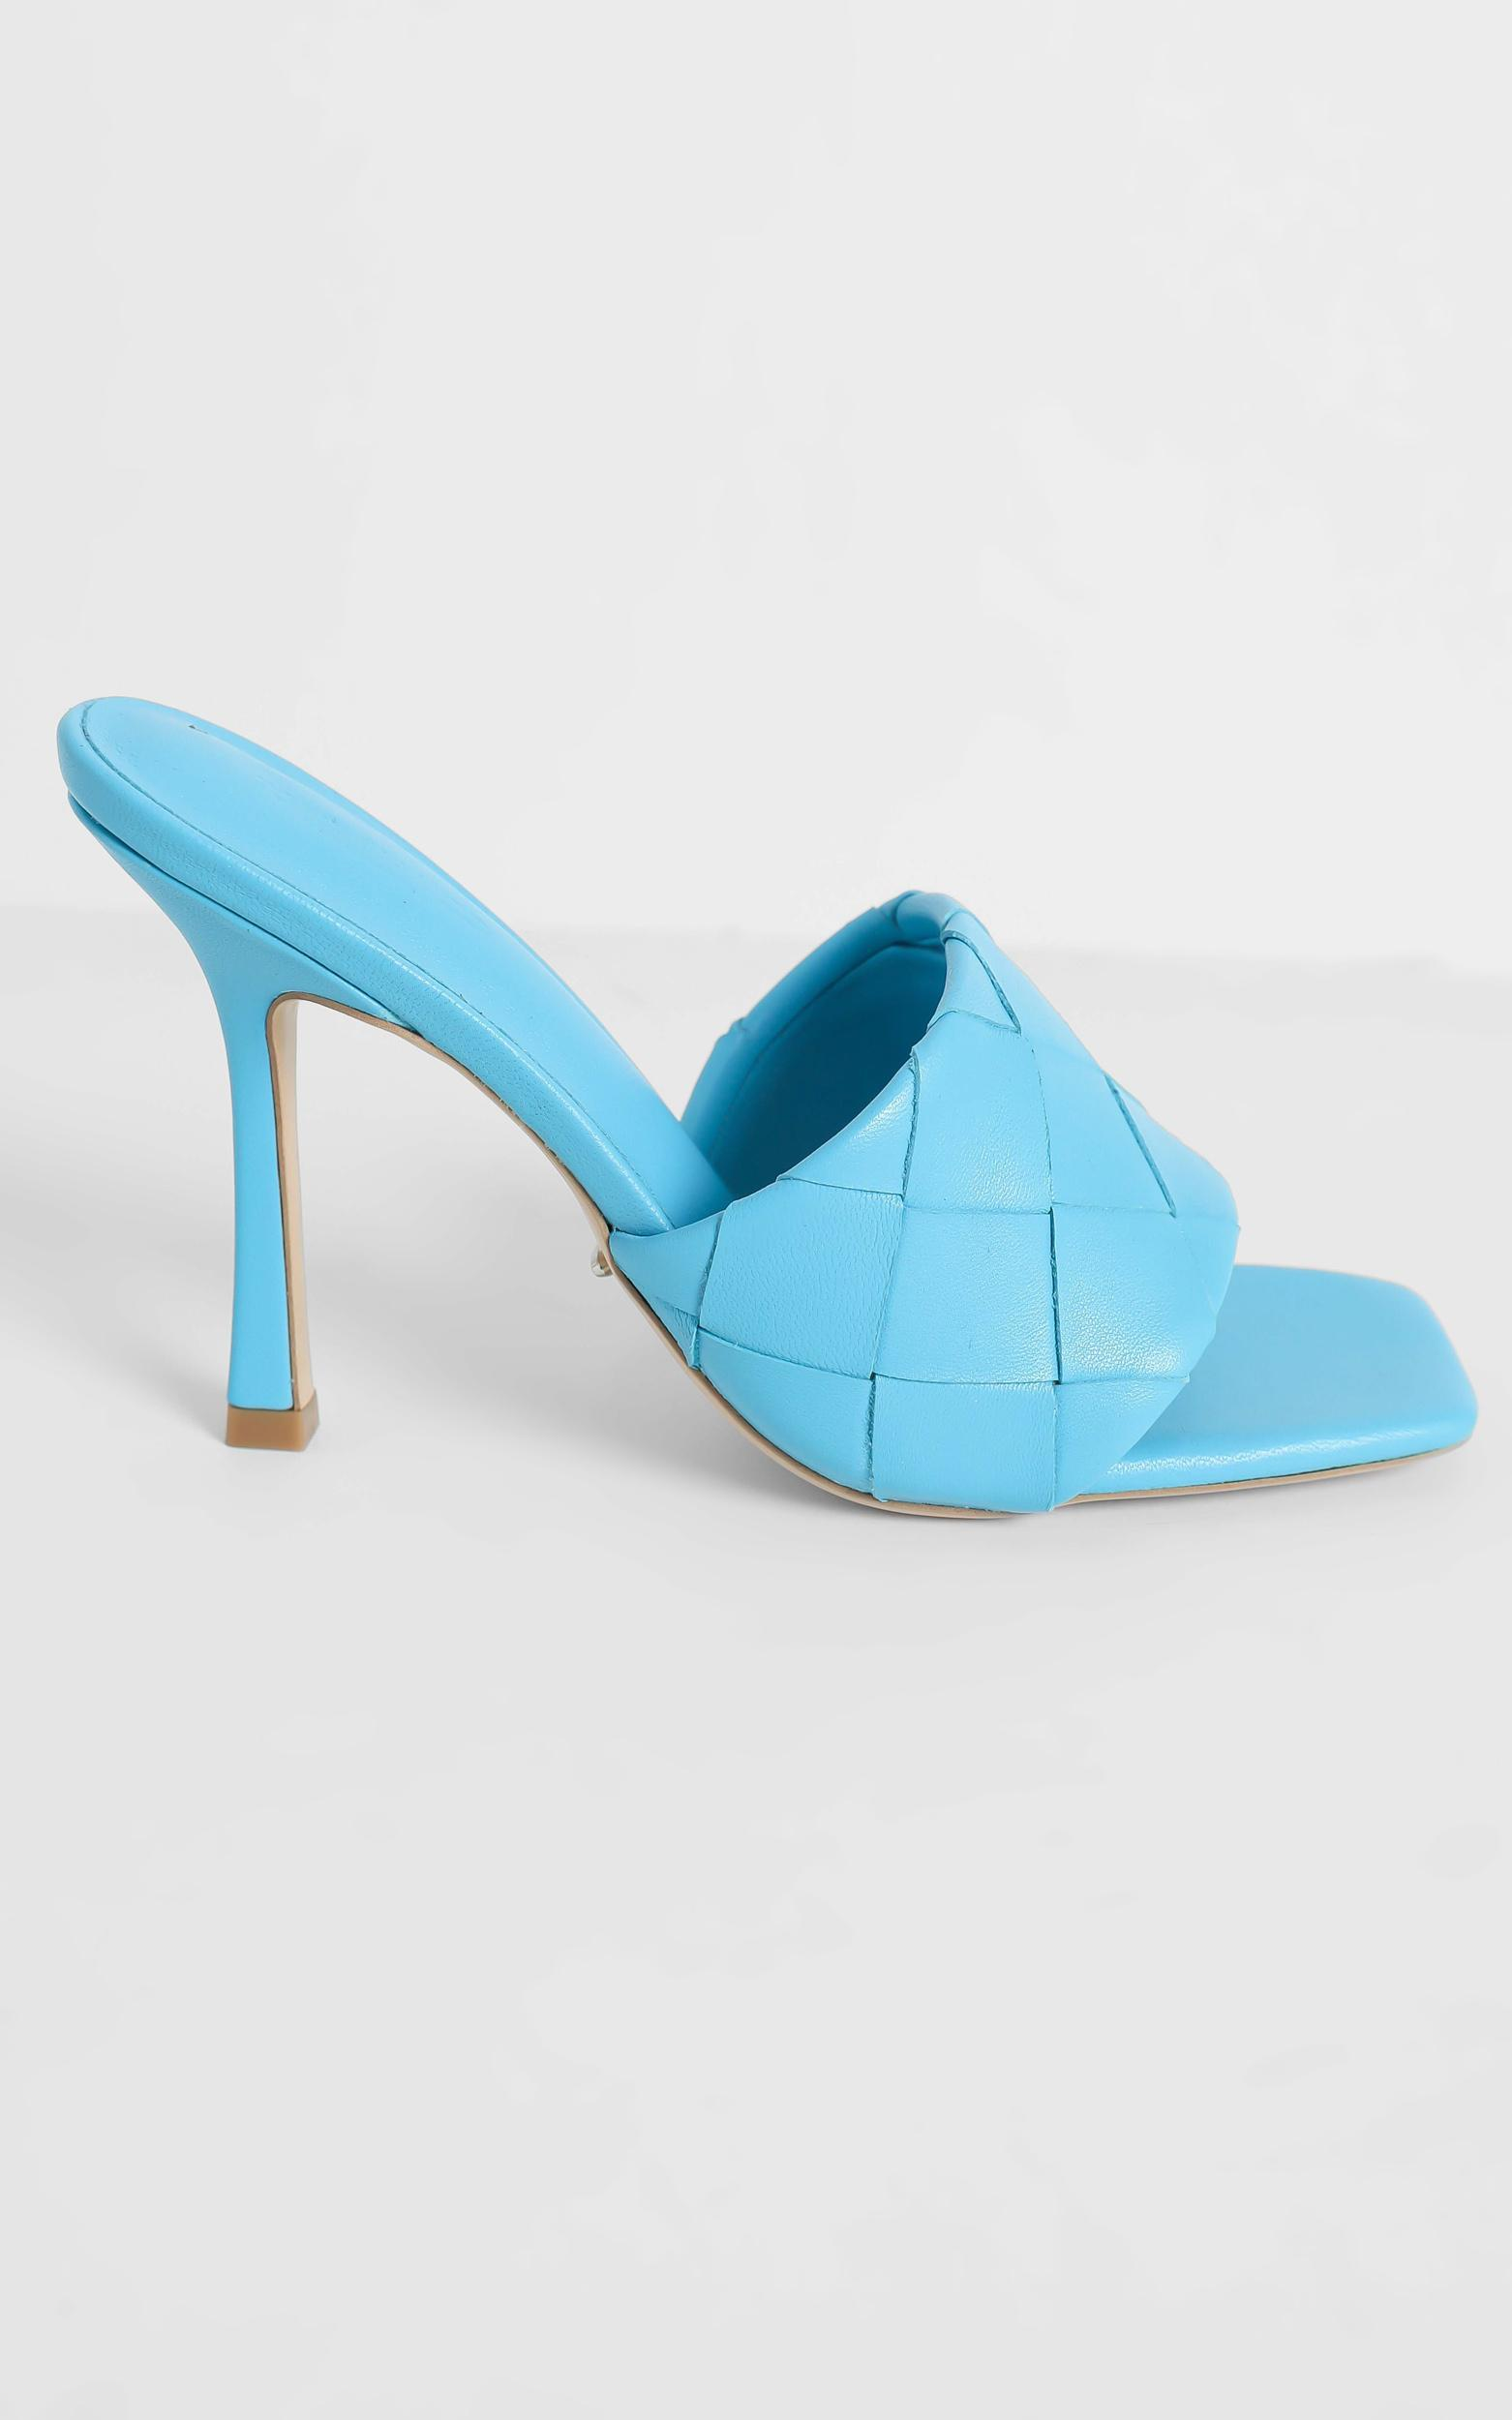 Tony Bianco - Frenzy Heels in Blue Sheep Napa - 5, Blue, hi-res image number null